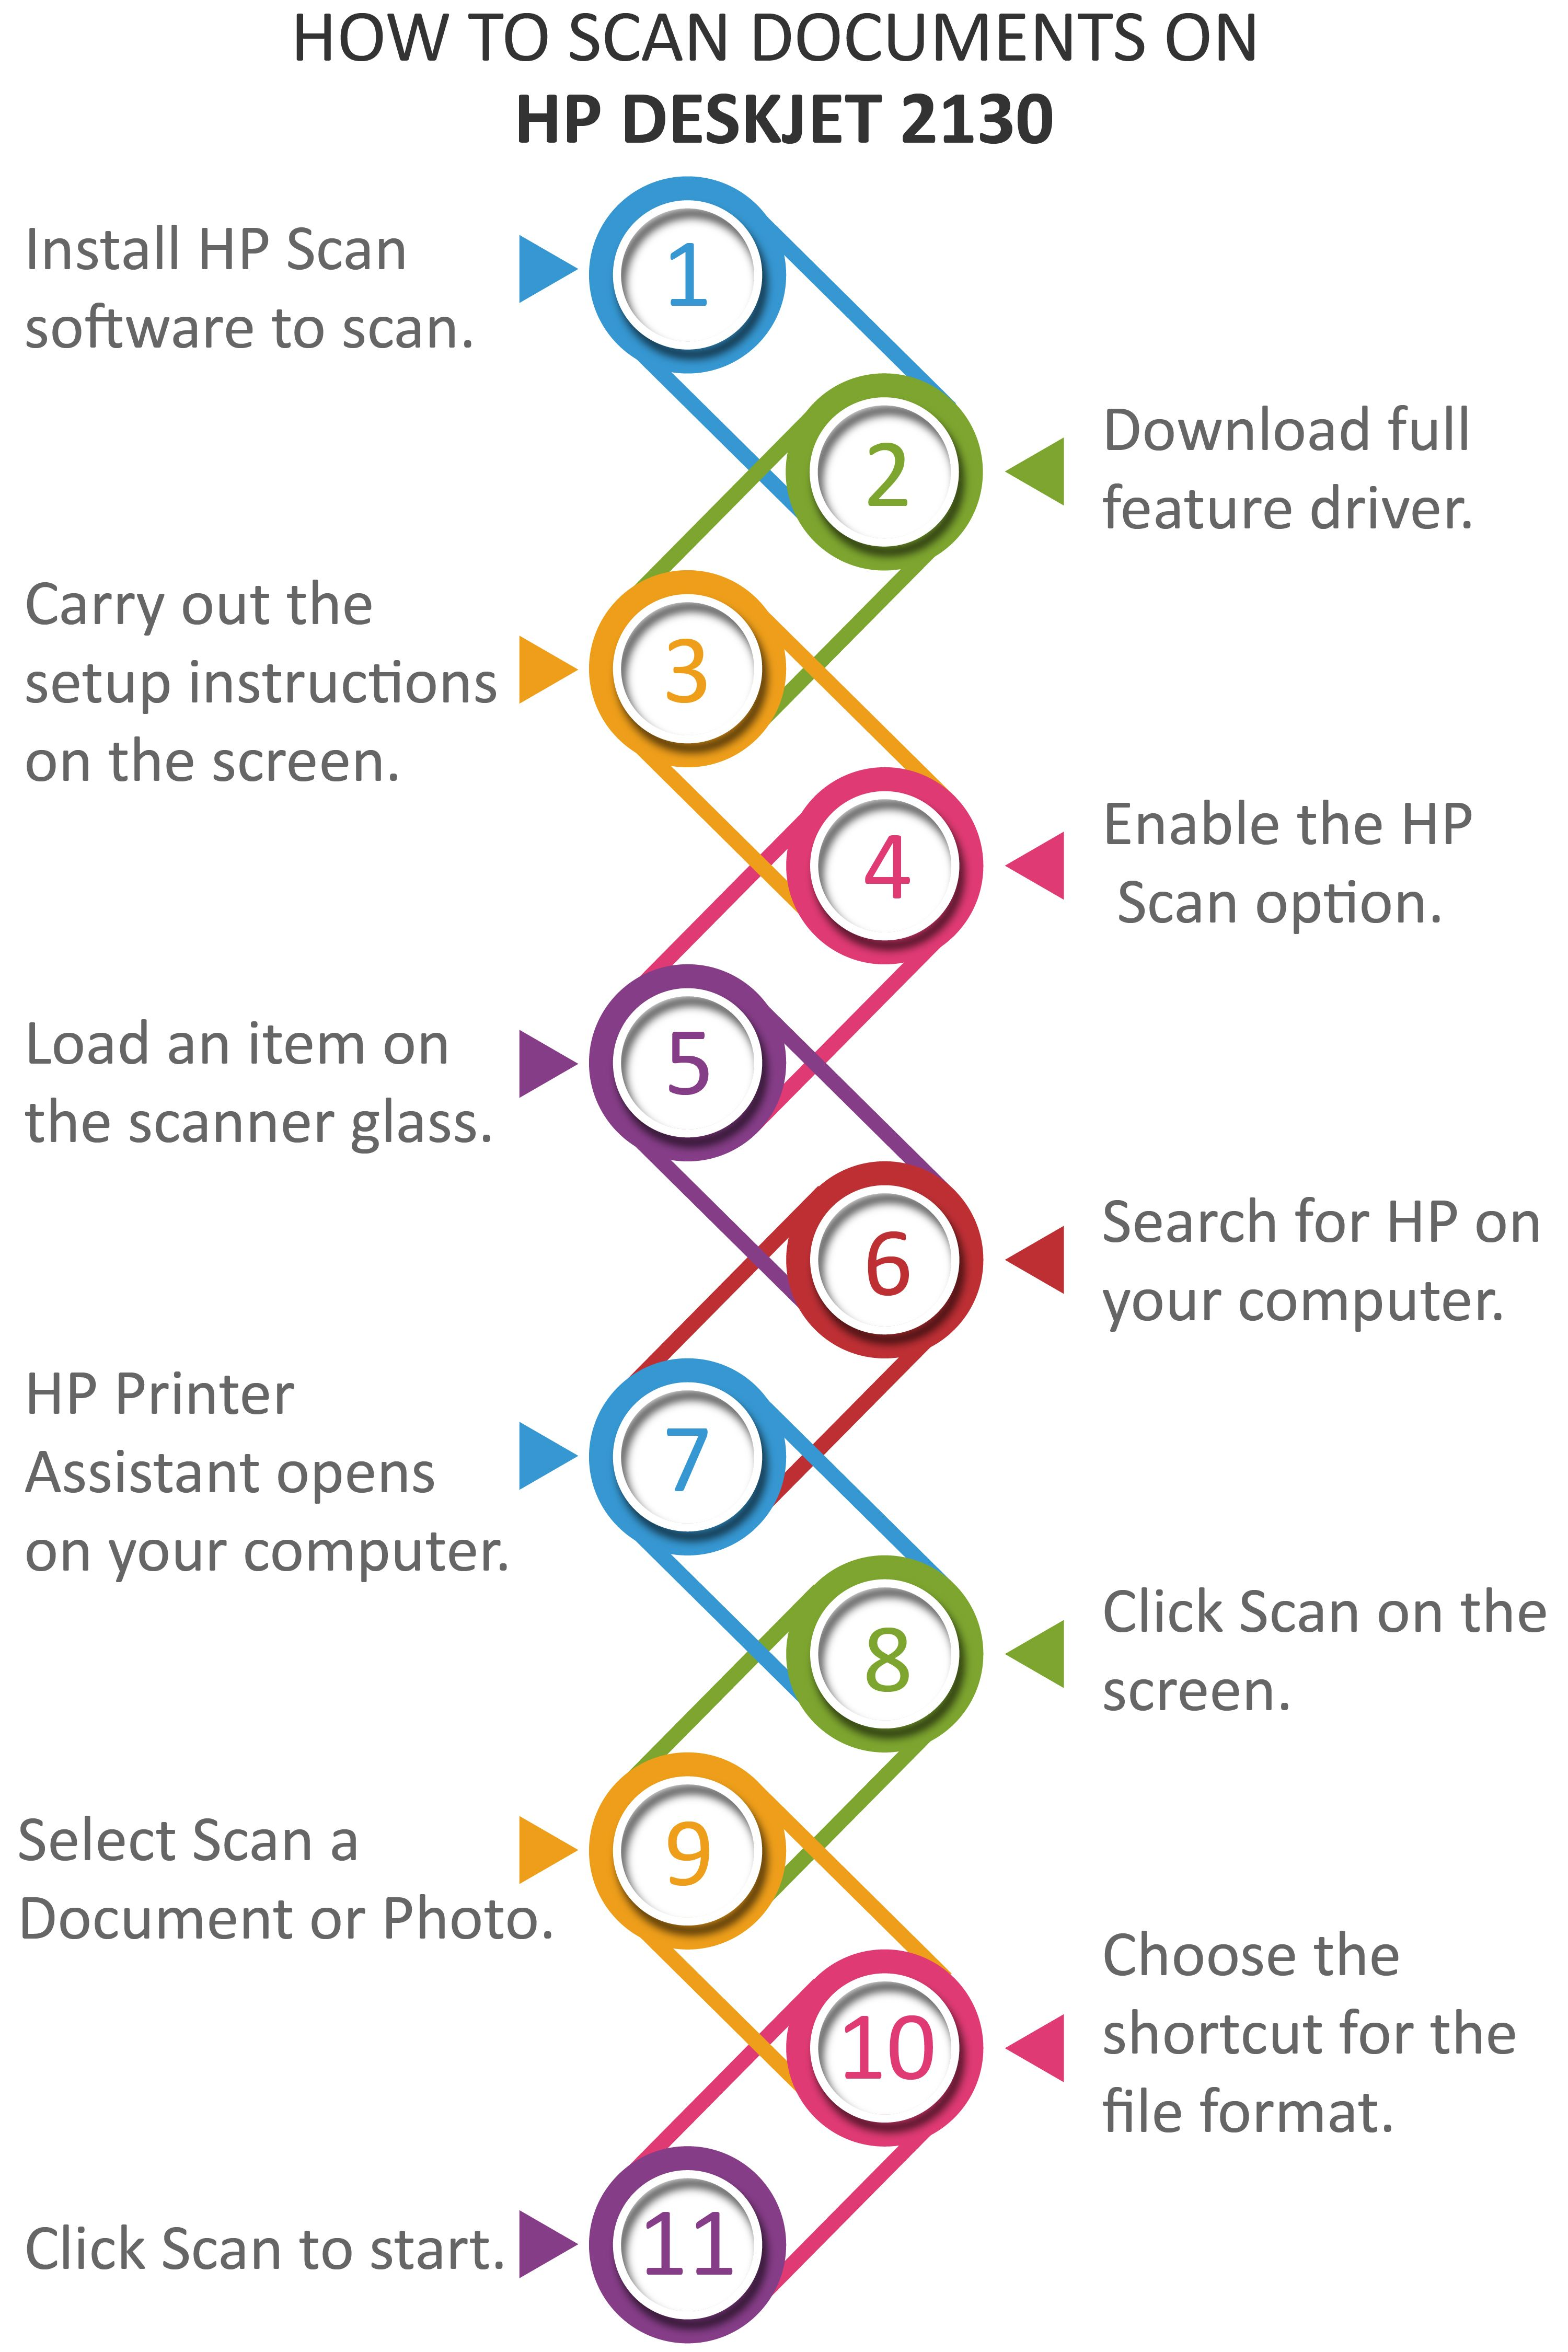 If you want to perform the scan option in the HP Deskjet